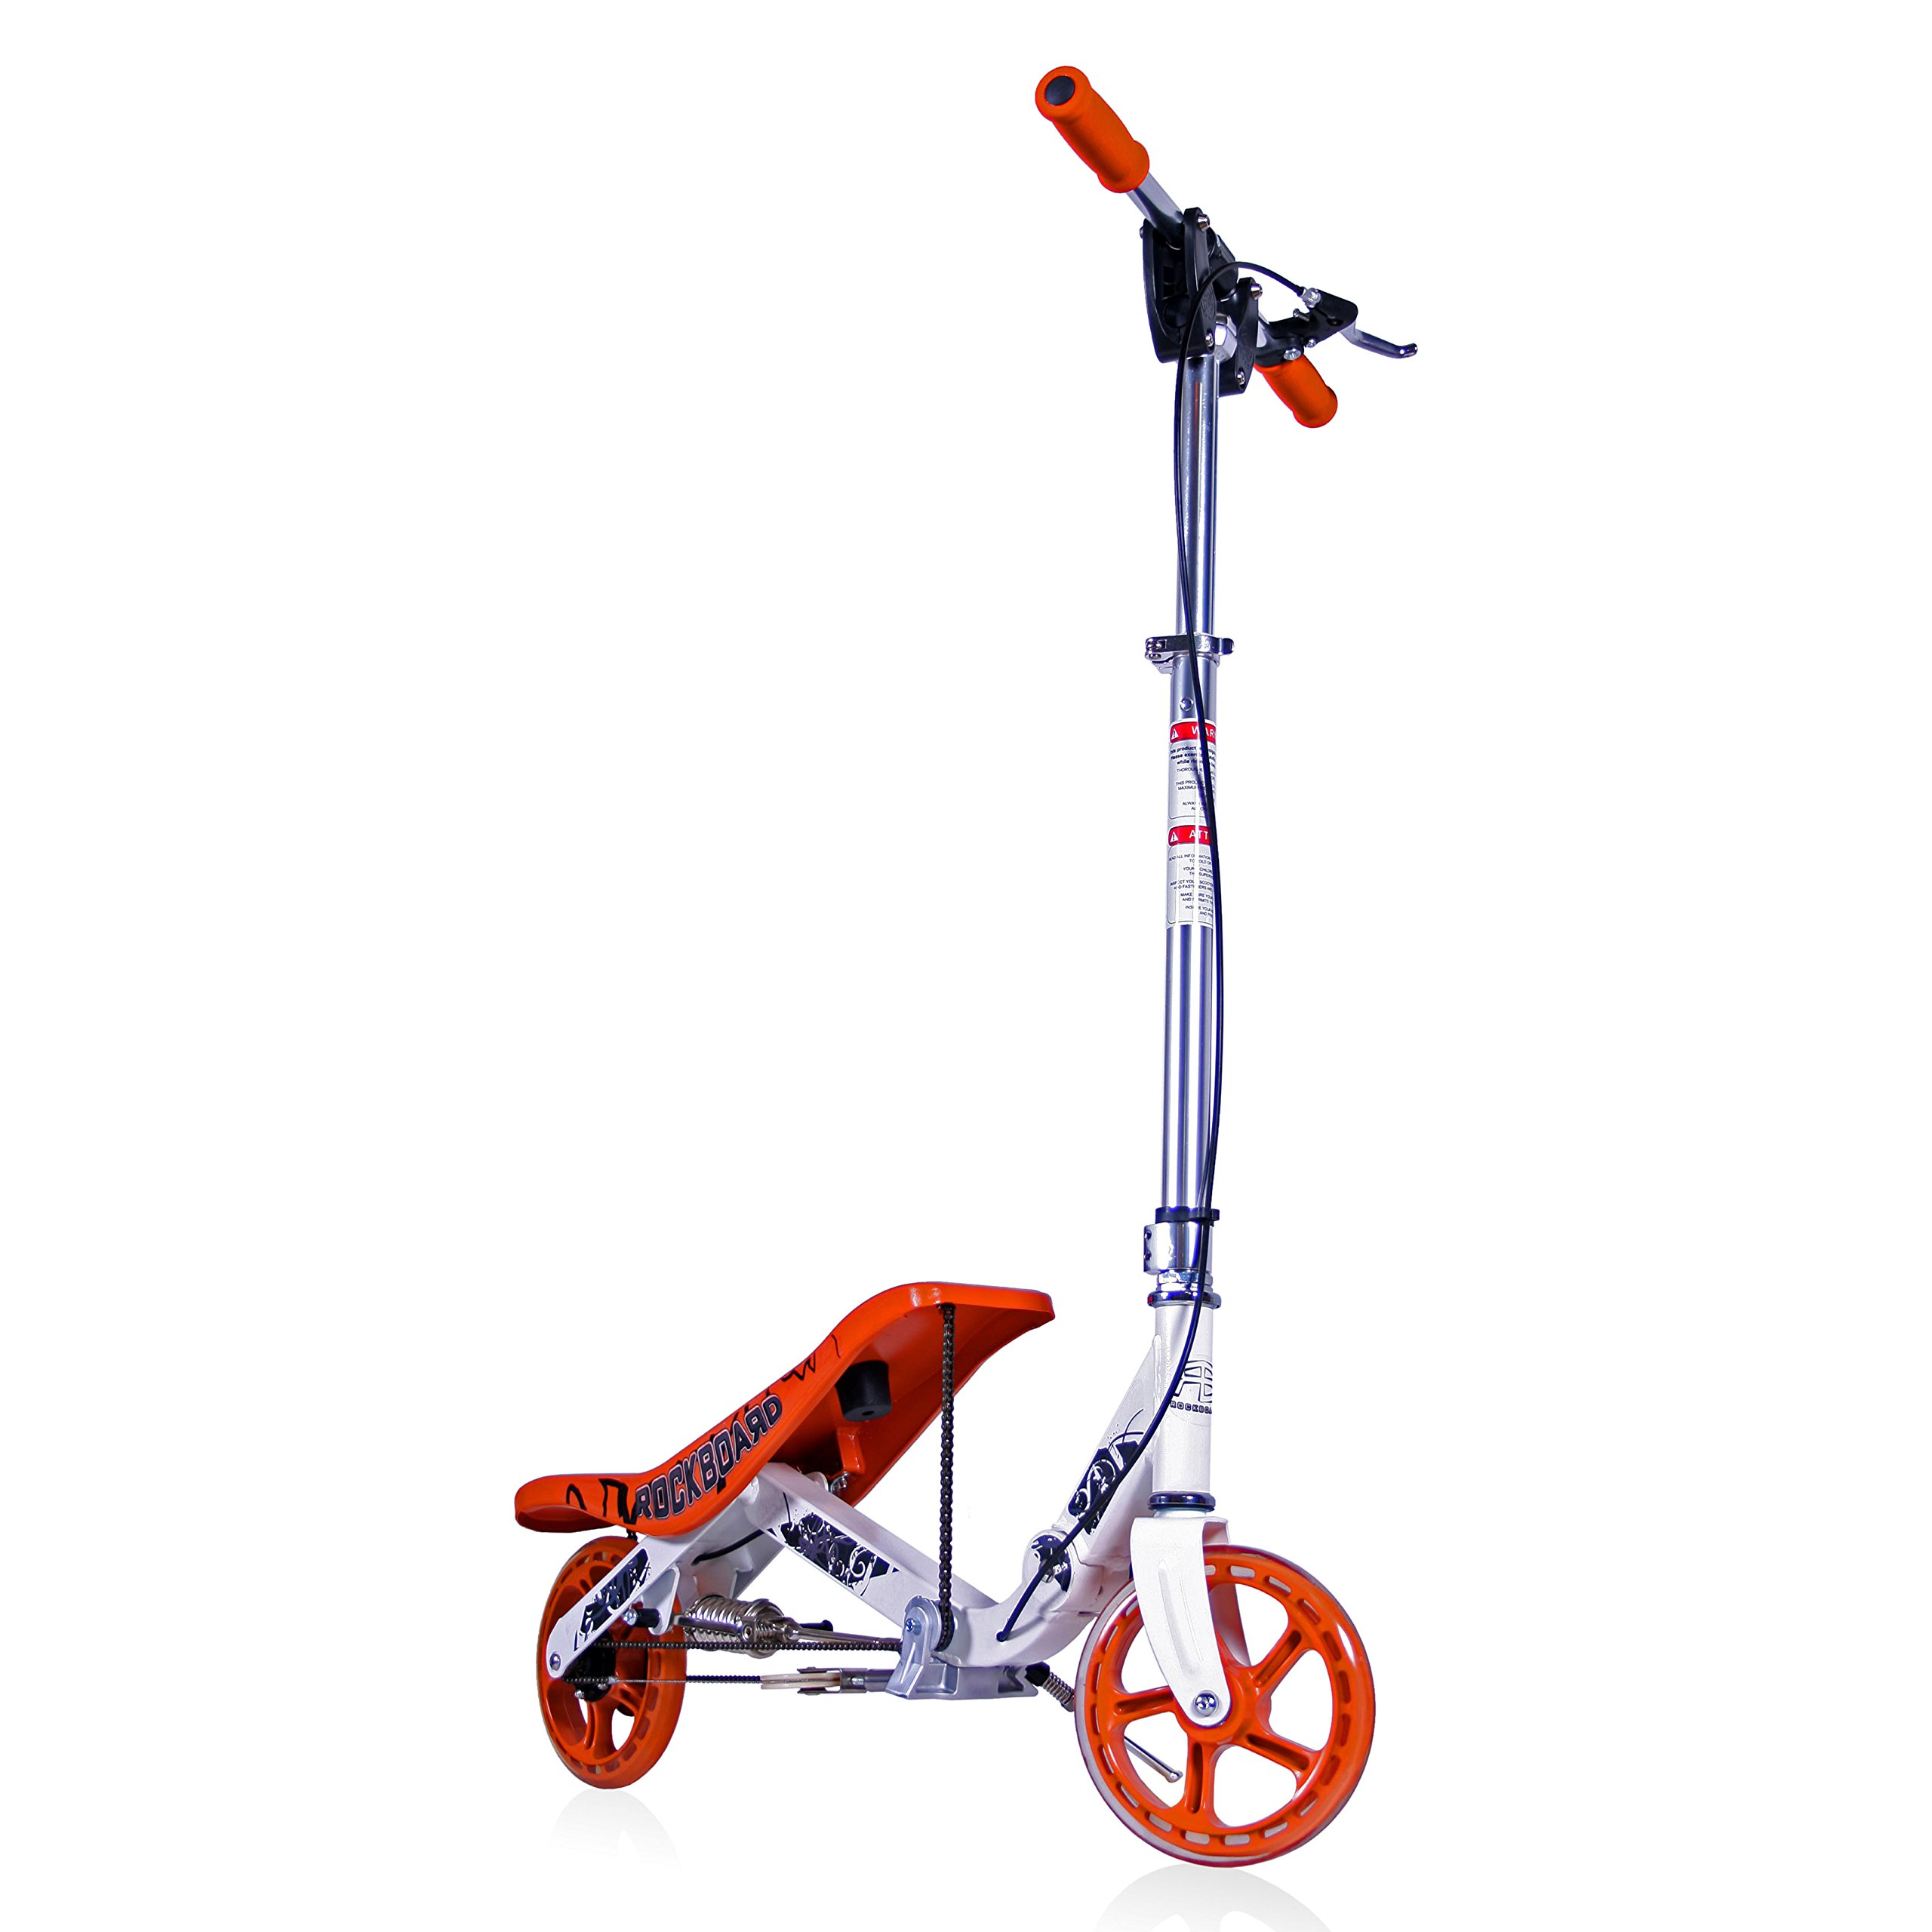 M.Y. Products LLC Rockboard Scooter (Orange) by Rockboard